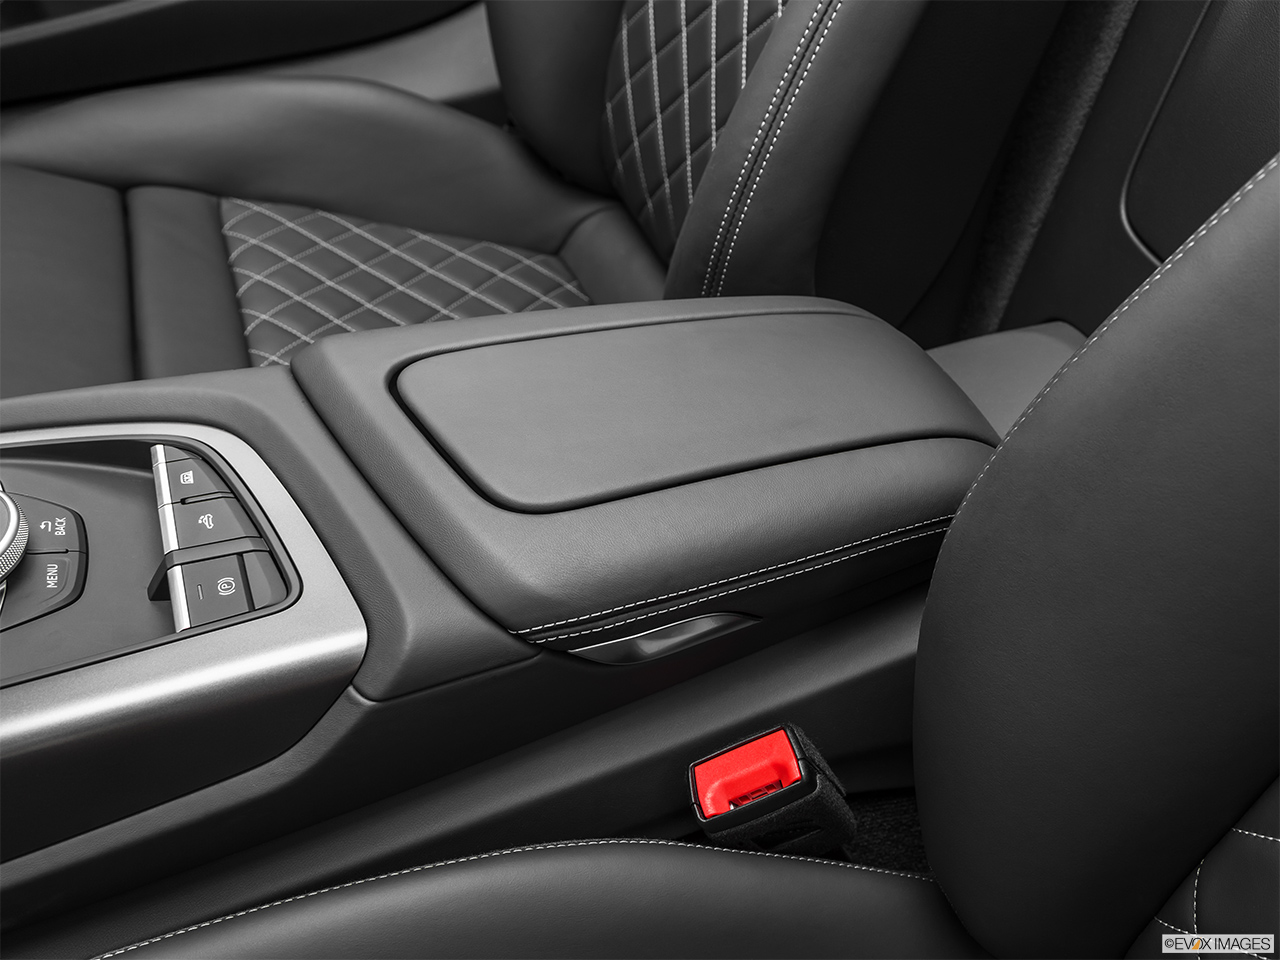 2020 Audi R8 Spyder V10 Front center console with closed lid, from driver's side looking down